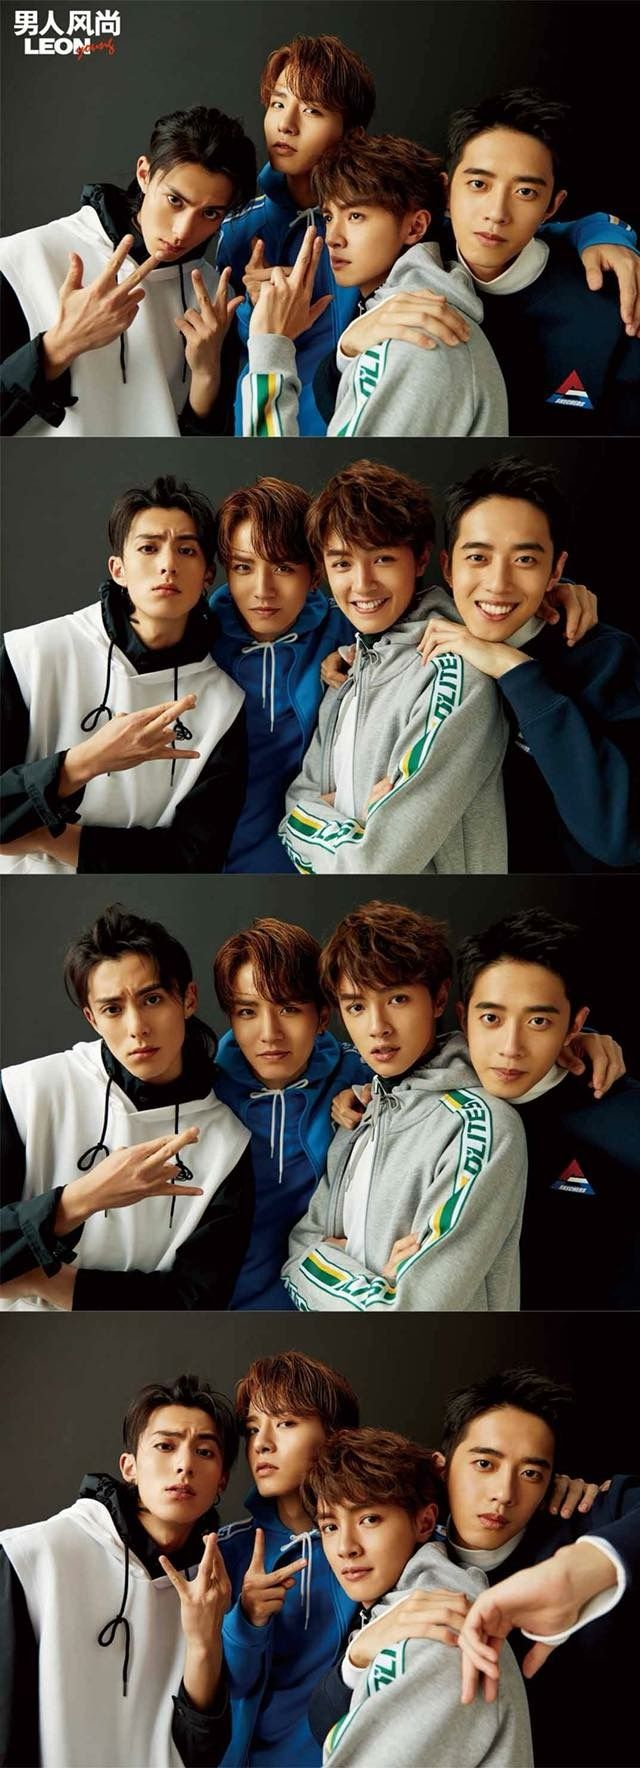 Pin by sharlyn. on F4 (2018) Meteor garden, F4 meteor